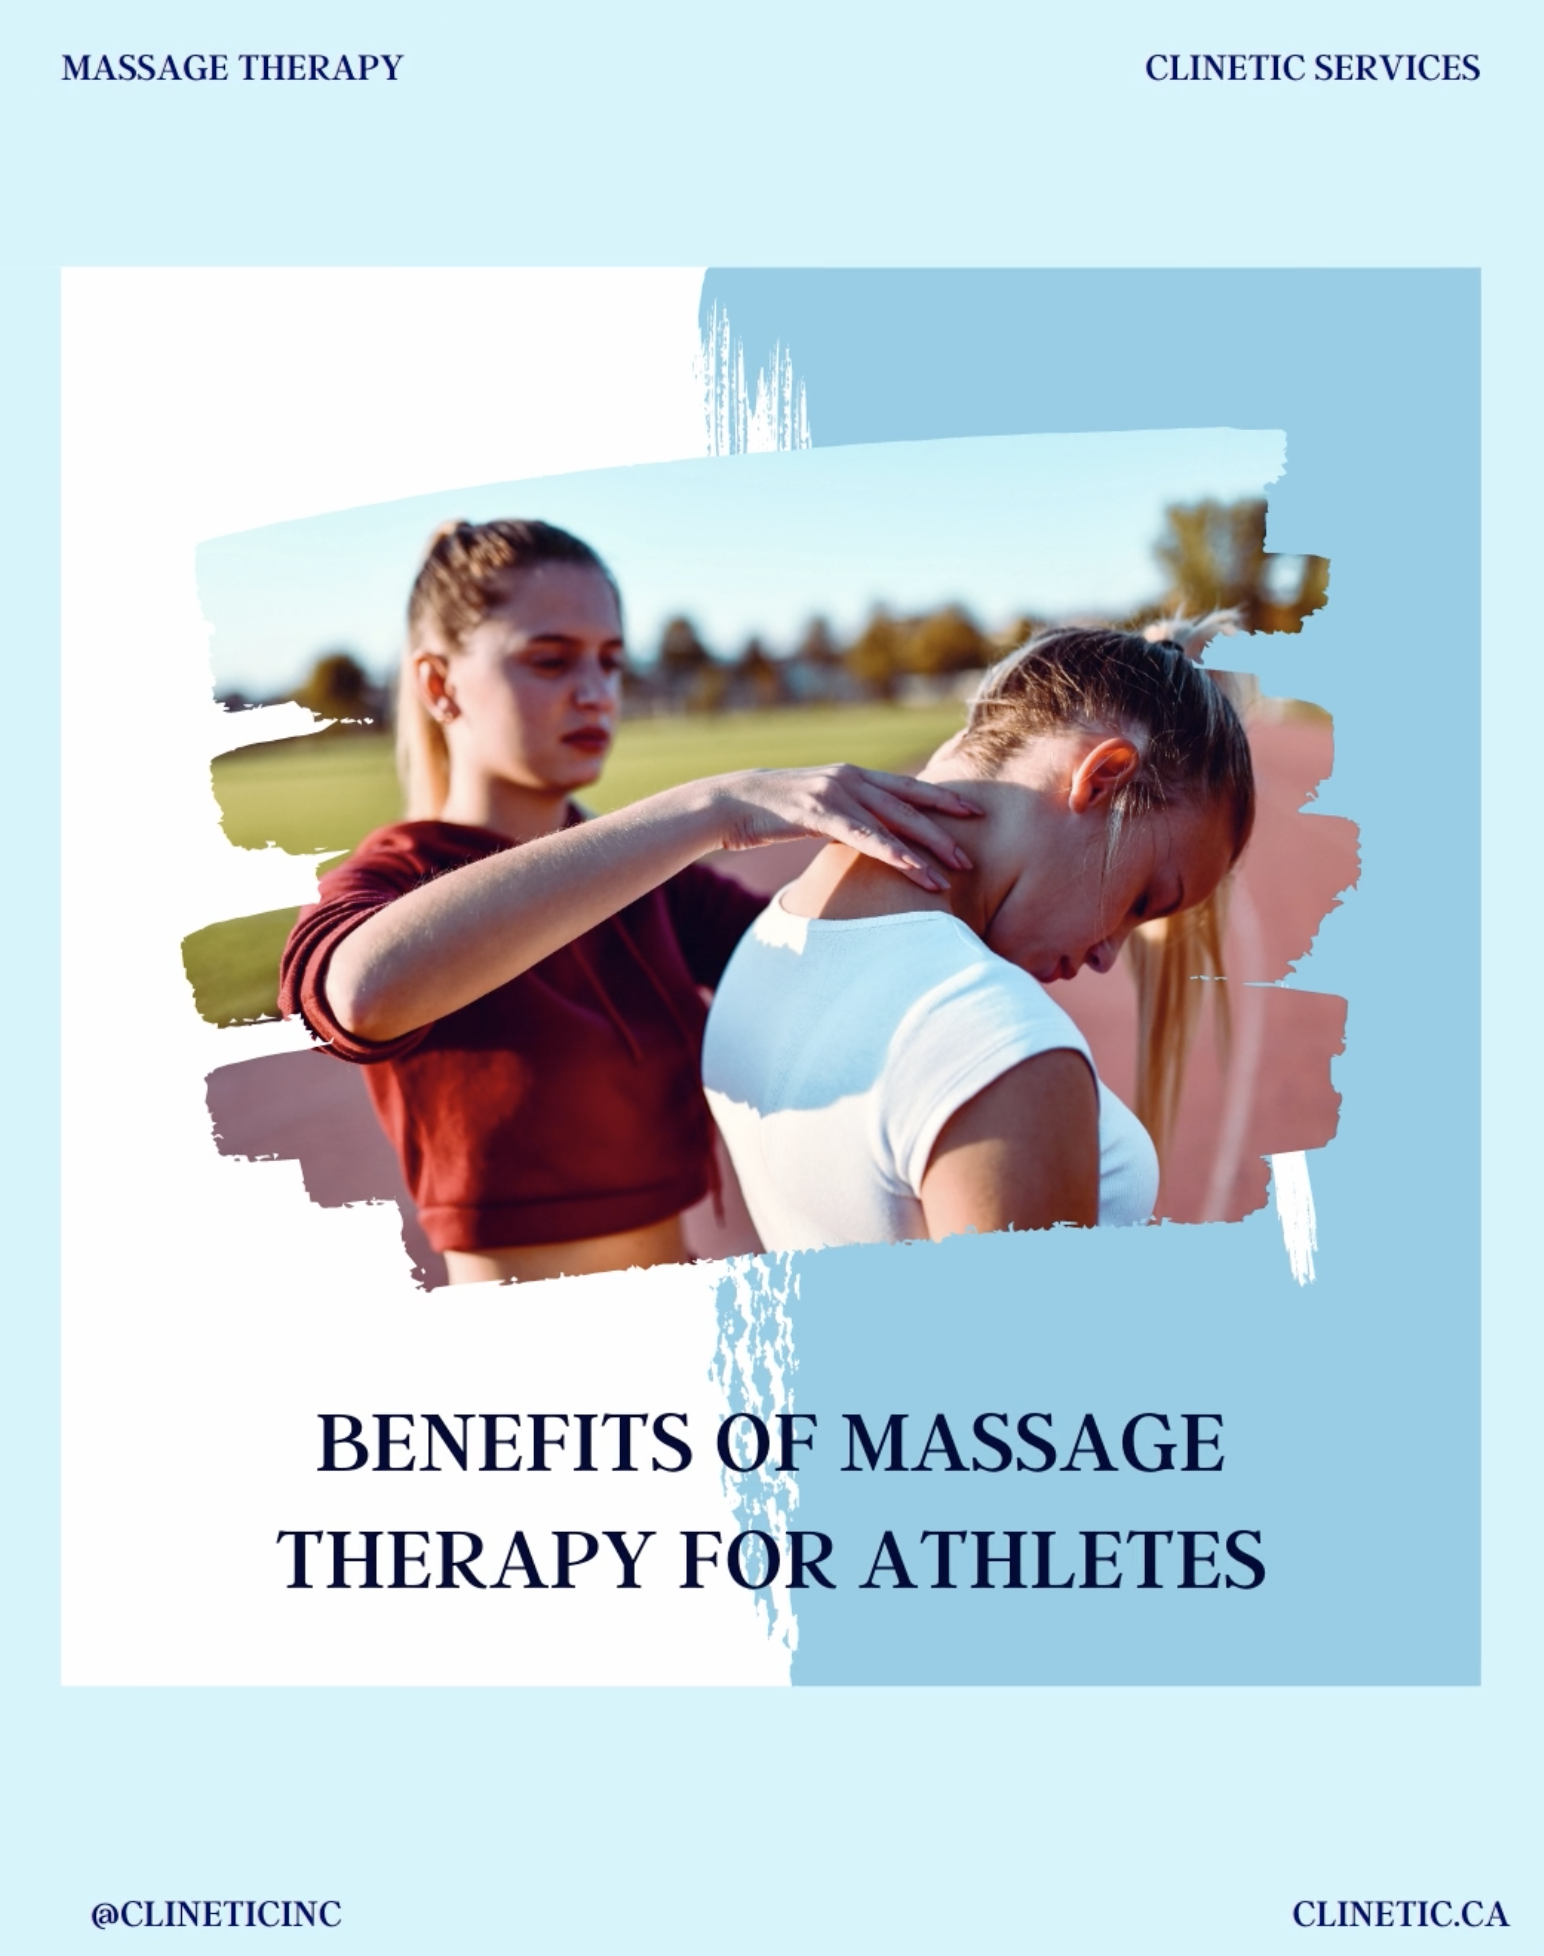 Benefits of Massage Therapy for Athletes